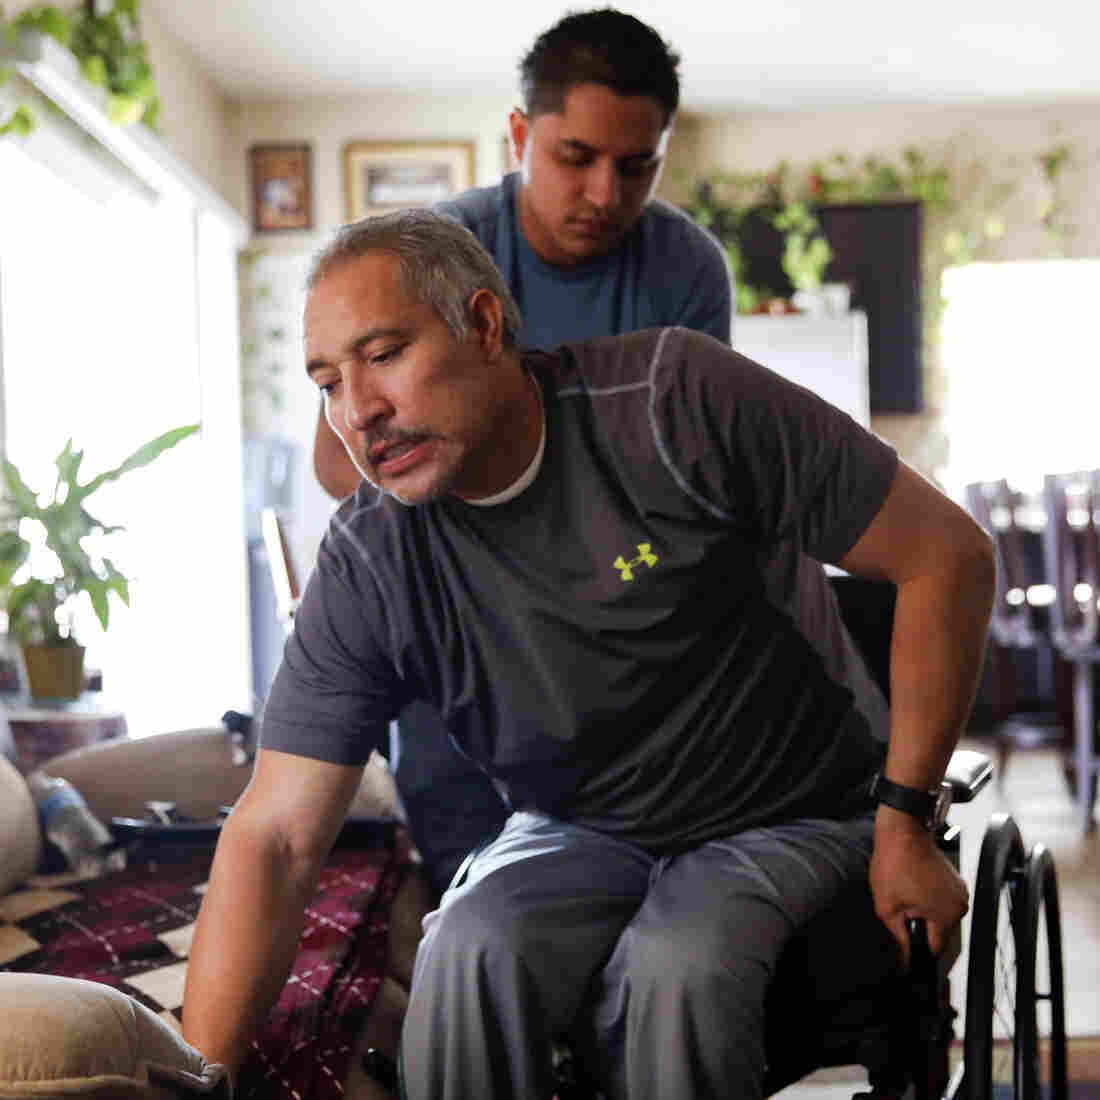 California Auditing Insurance Company That Took Away Home Health Aide